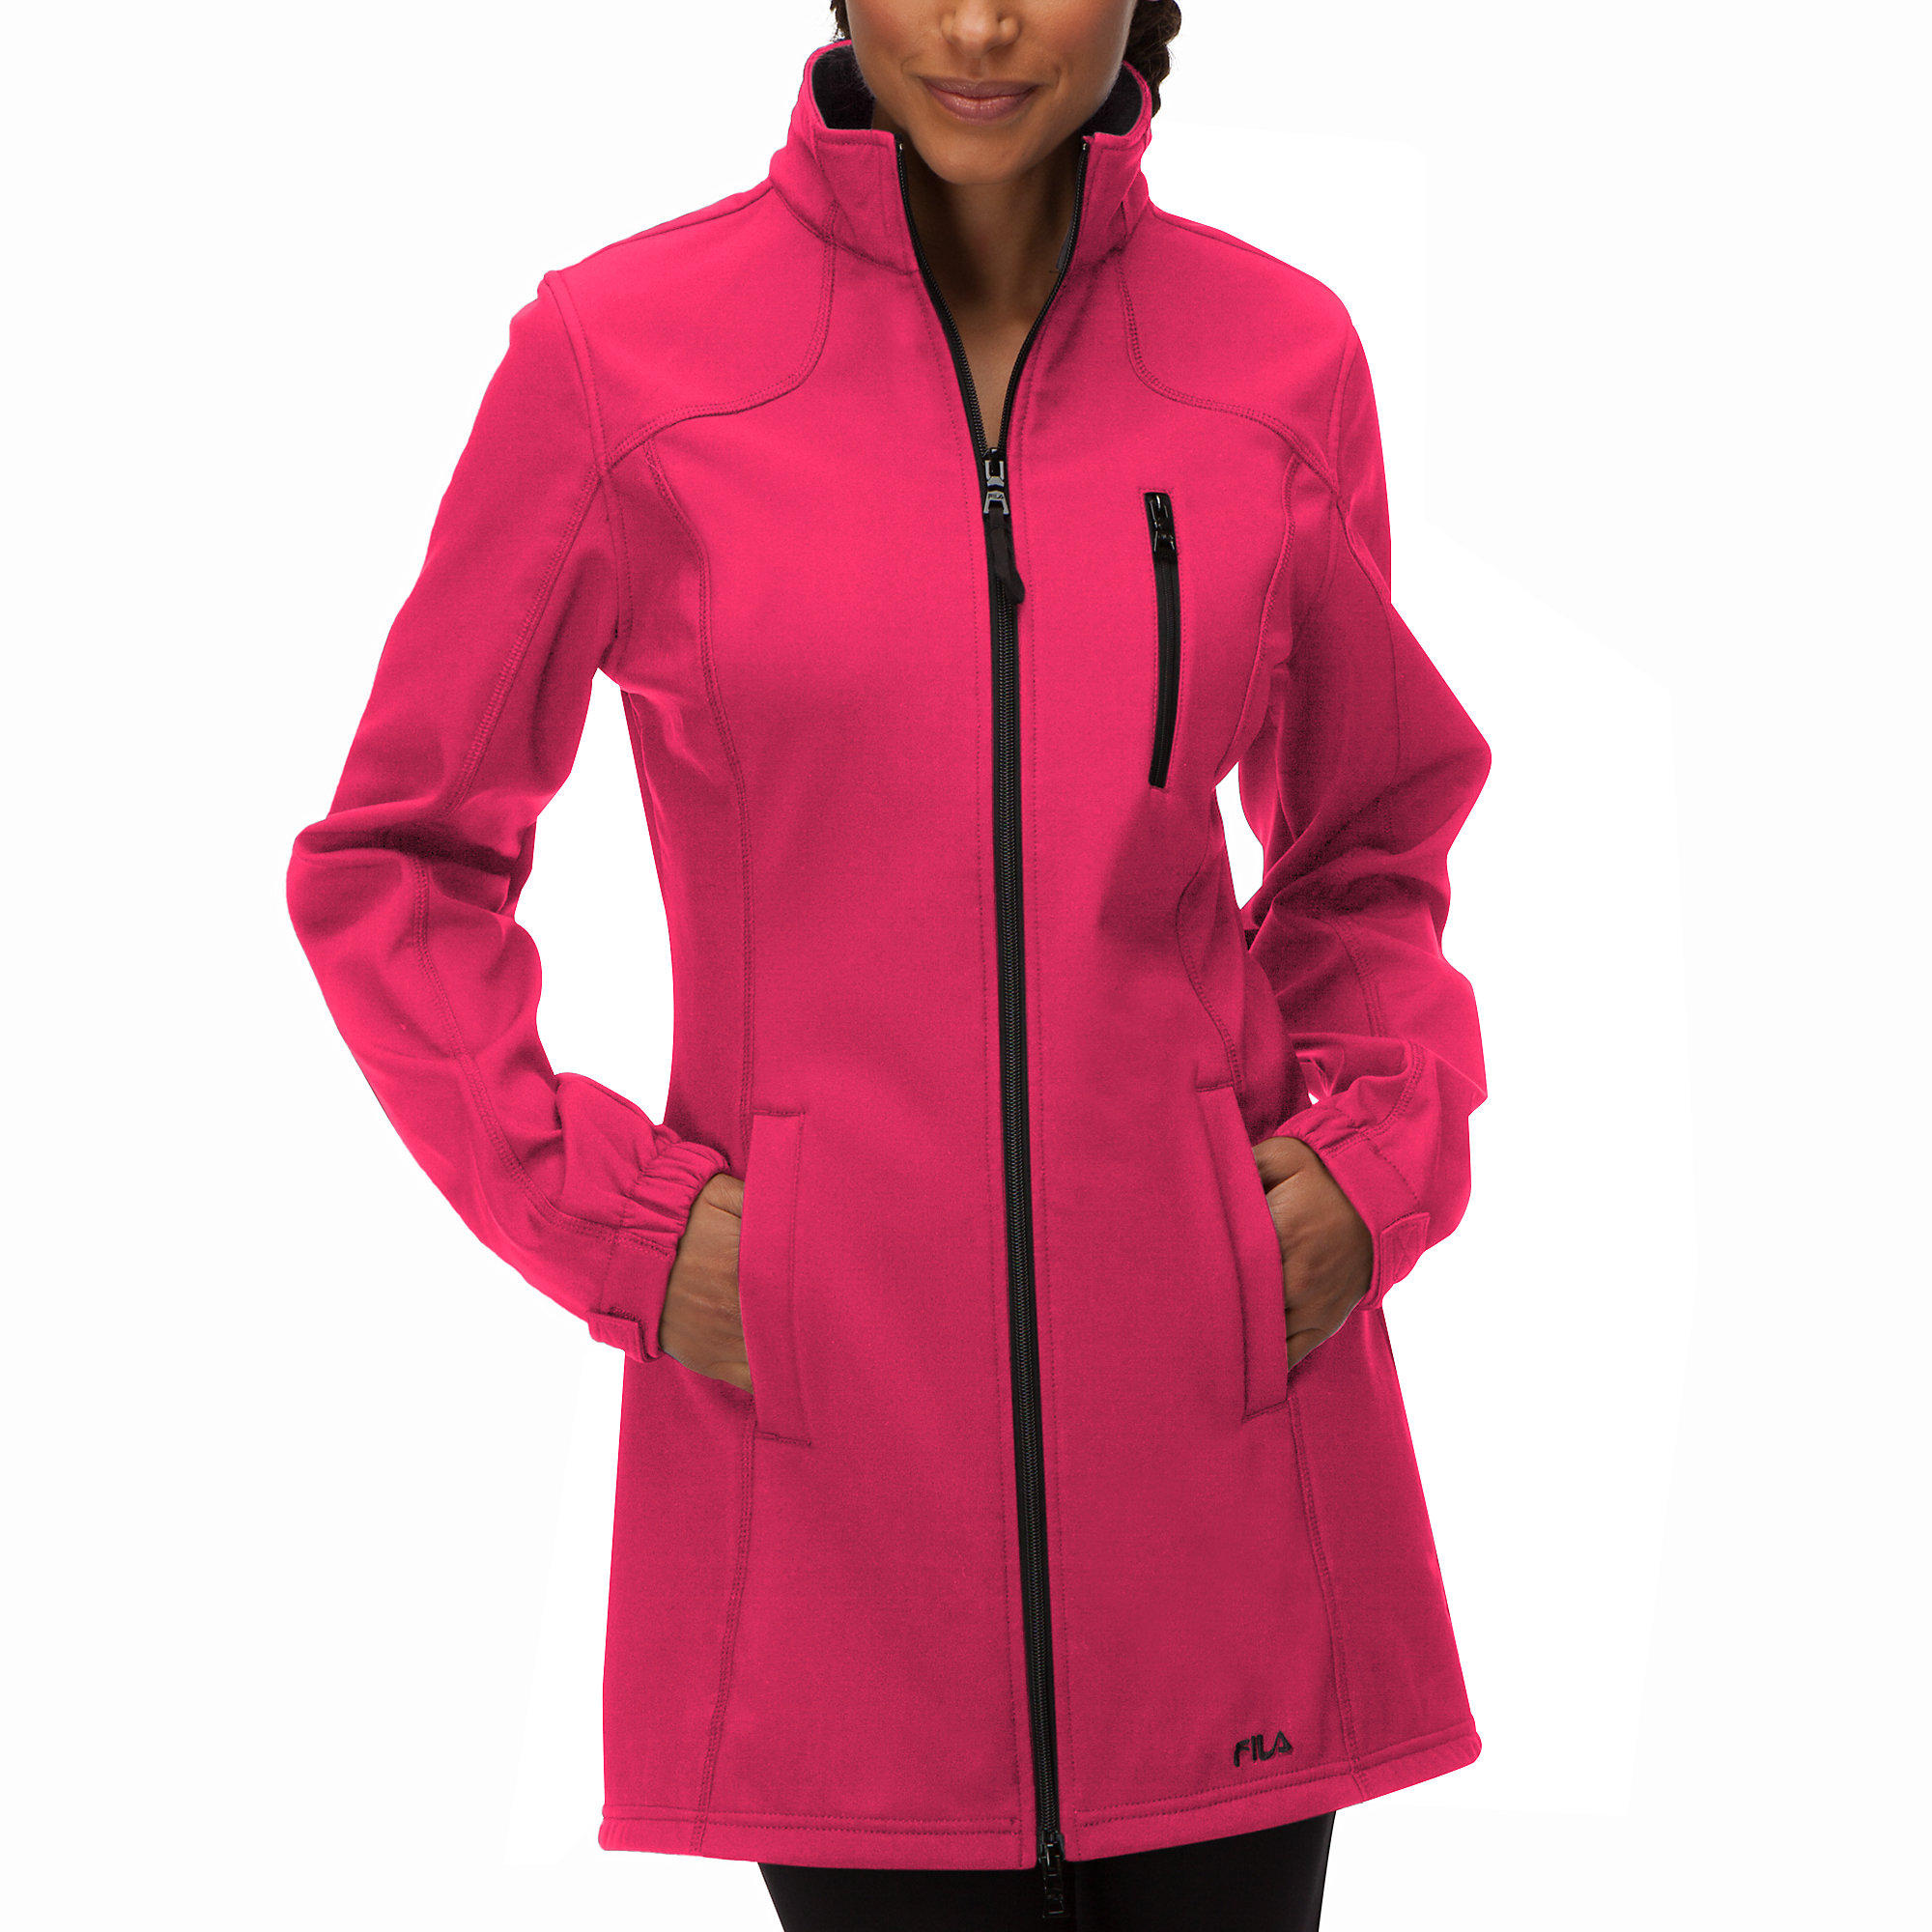 FILA Women's Venture Long Bonded Jacket